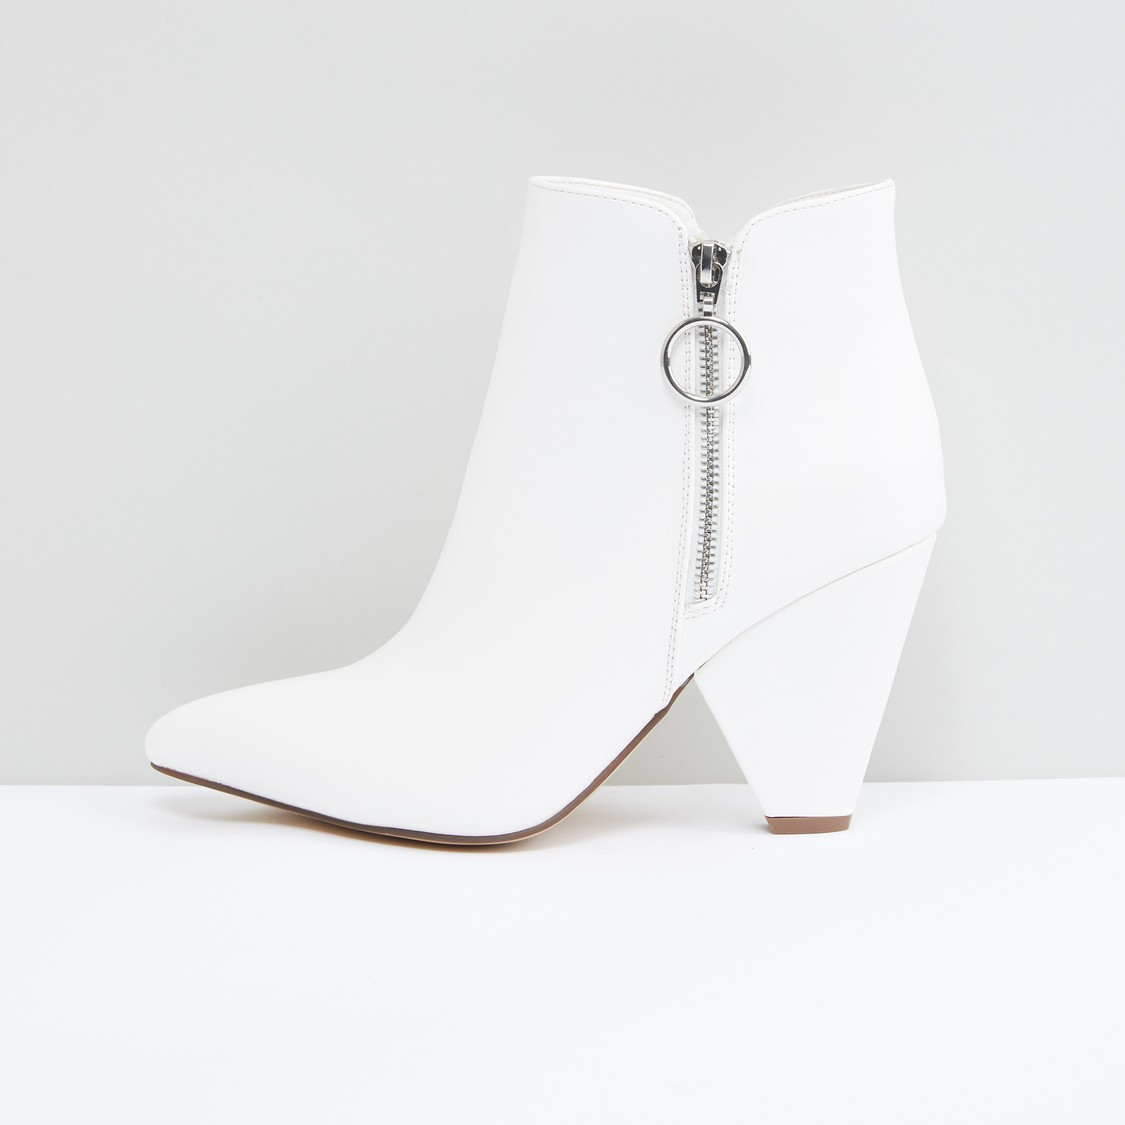 Boots with Zip Closure